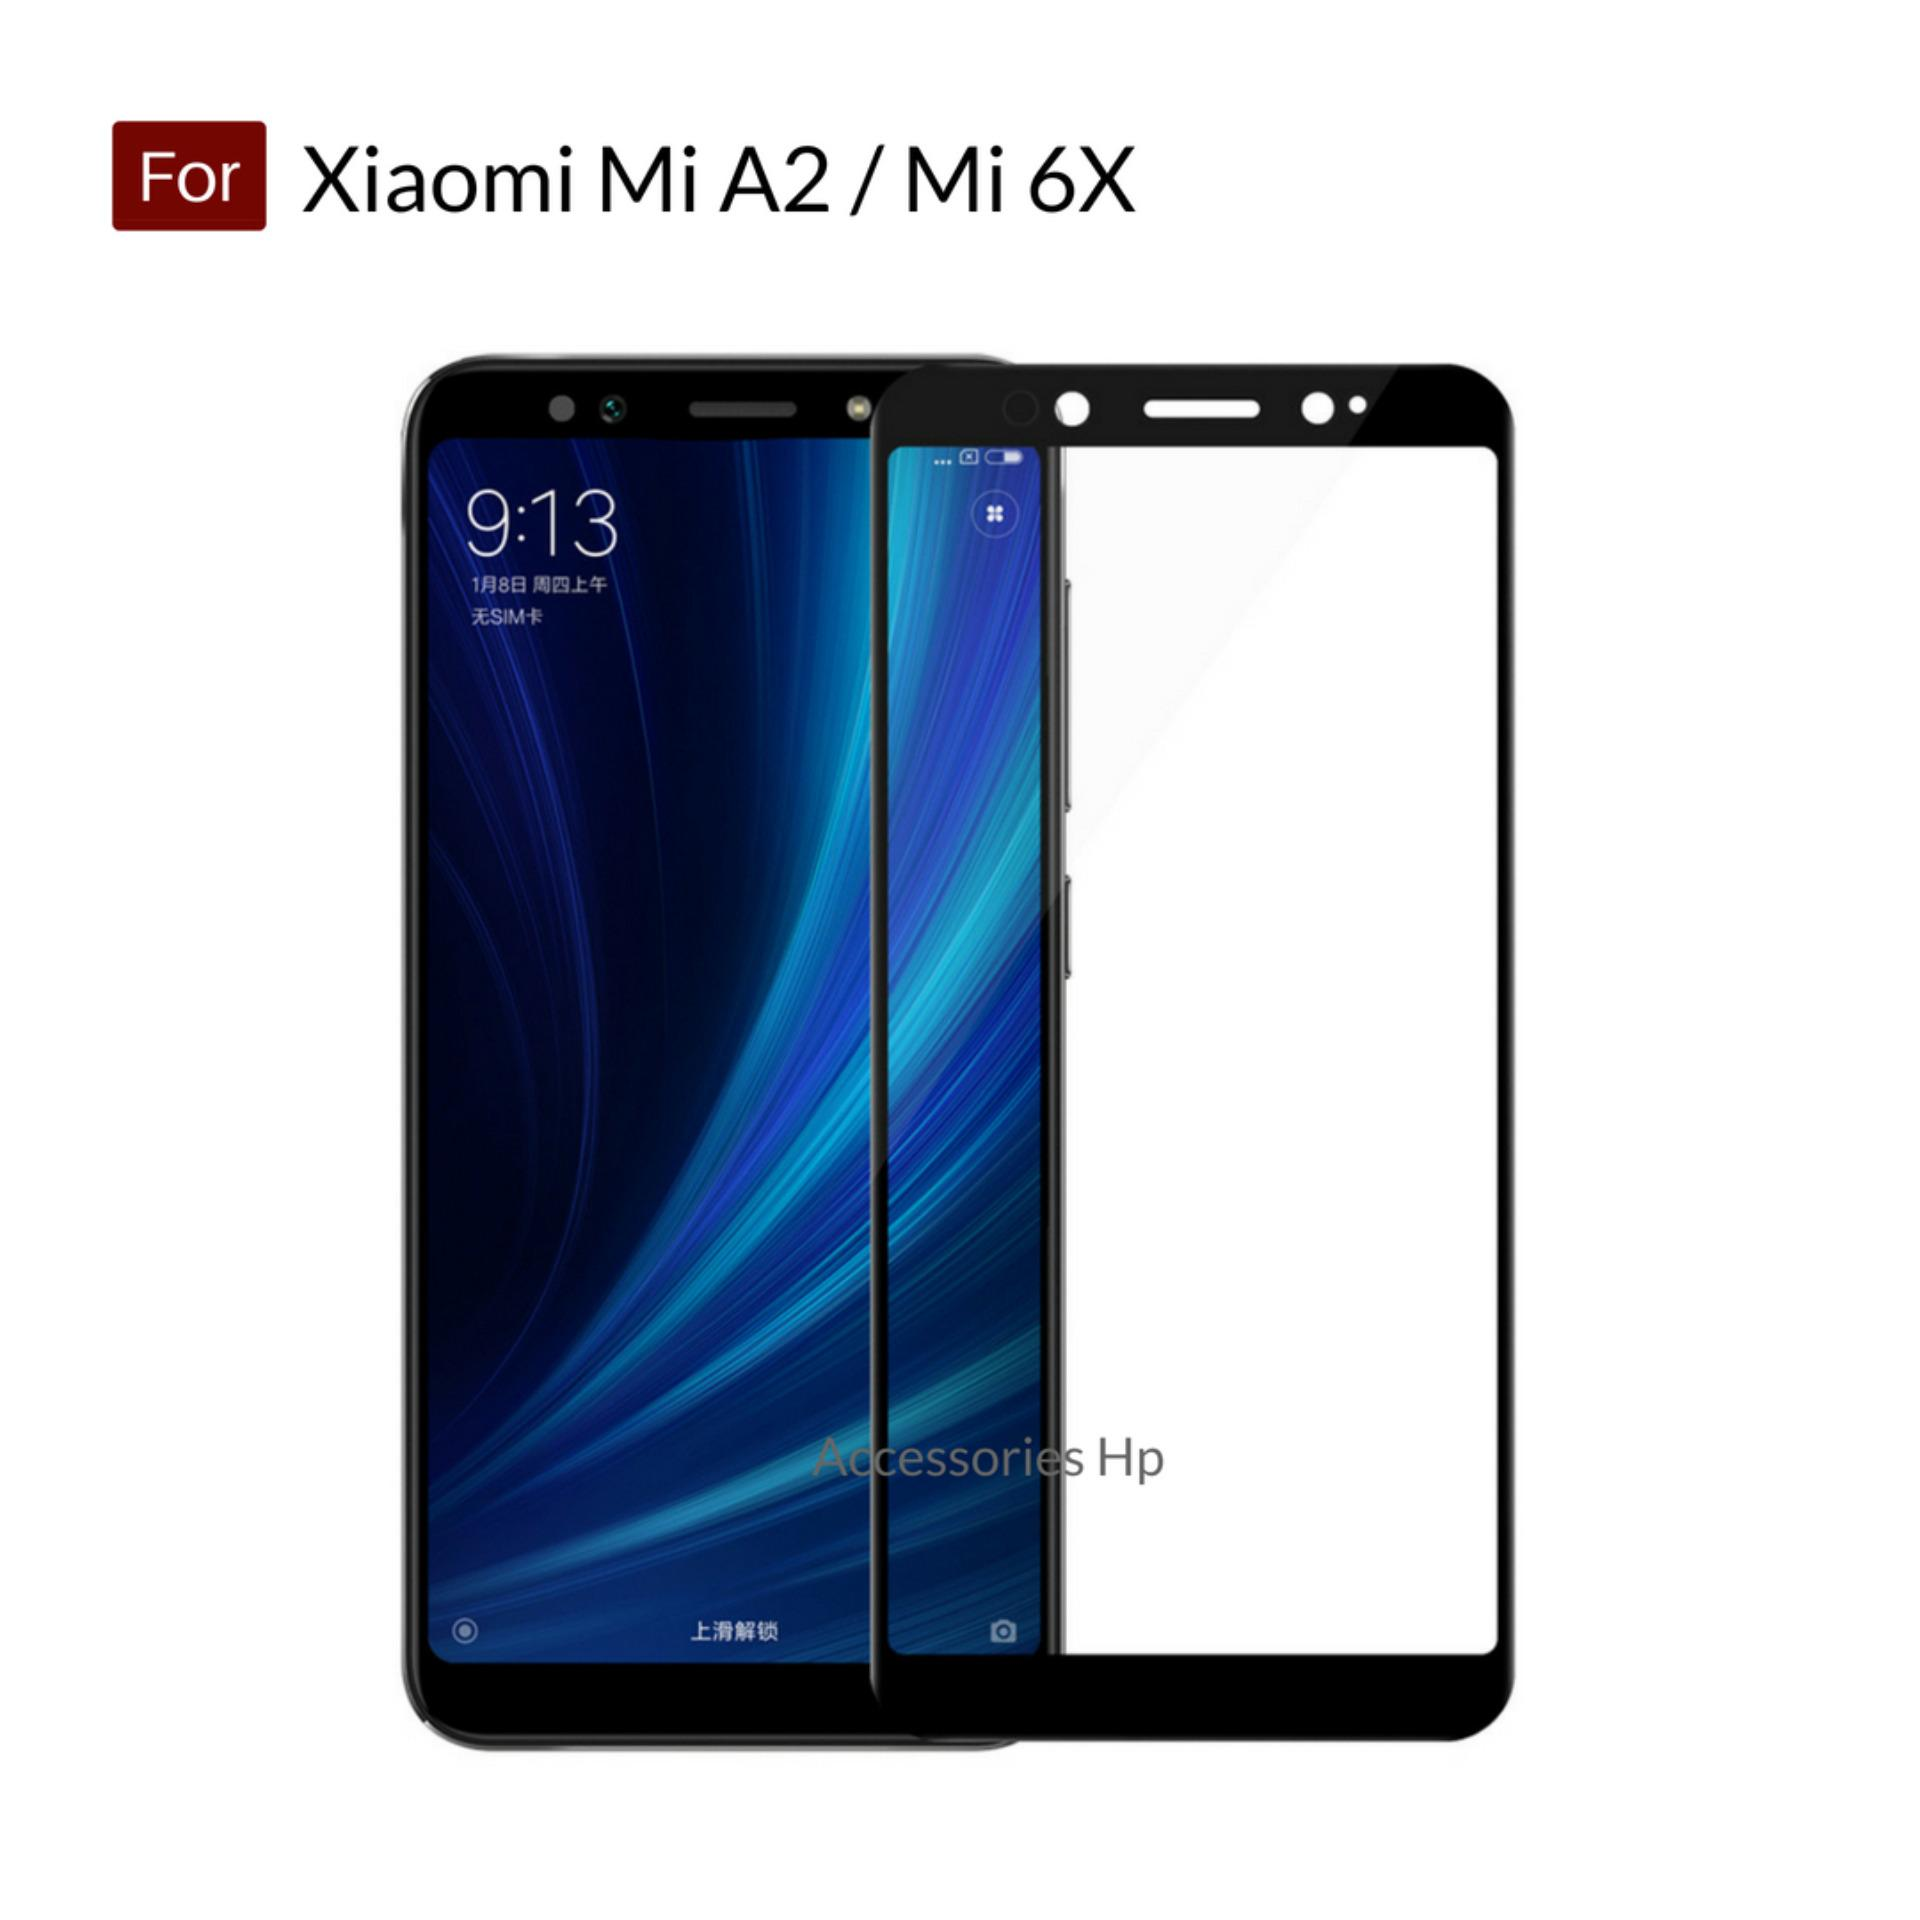 Accessories Hp Full Cover Tempered Glass Warna Screen Protector for Xiaomi Mi A2 / Mi 6X - Black